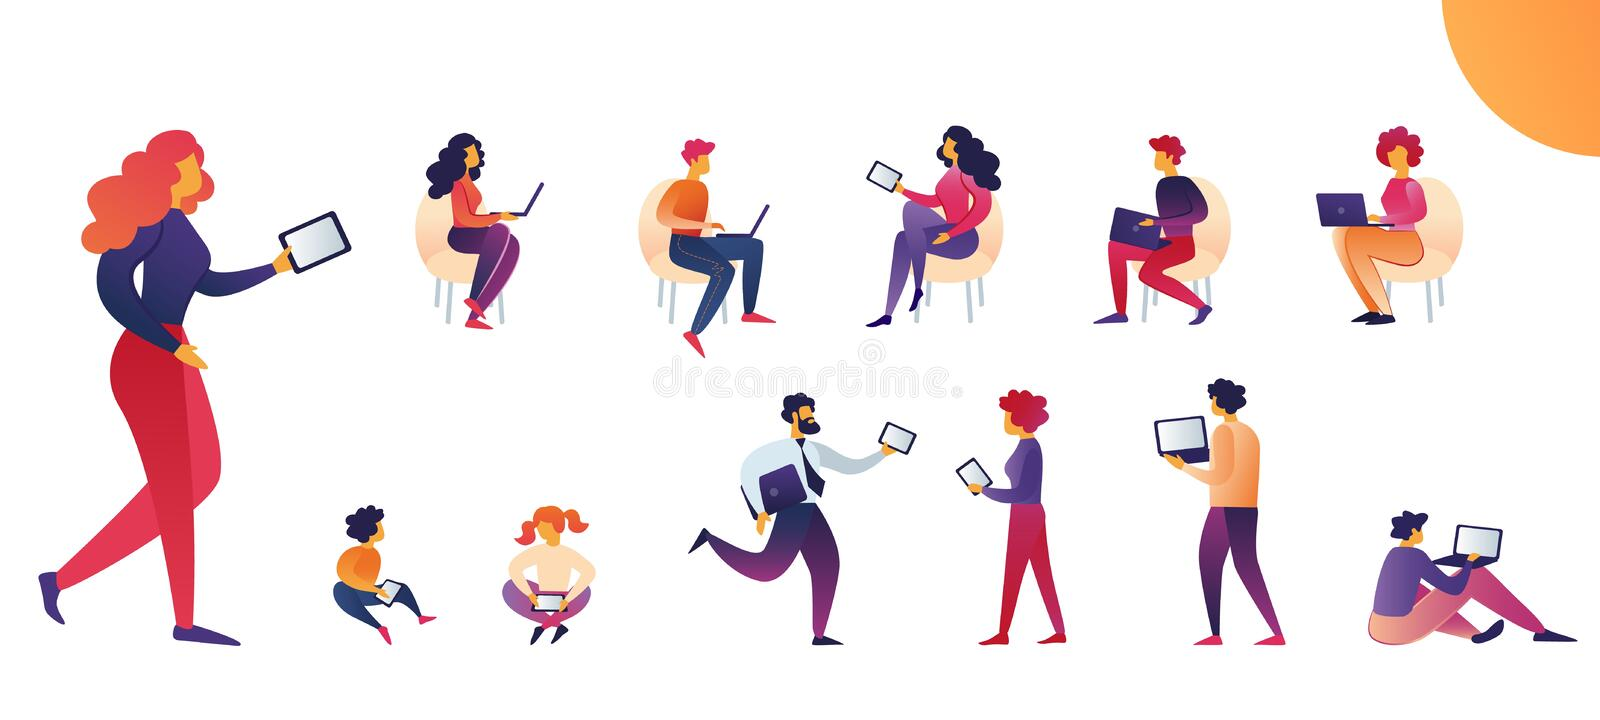 People use Tablets and Laptops Cartoon Vector. royalty free illustration